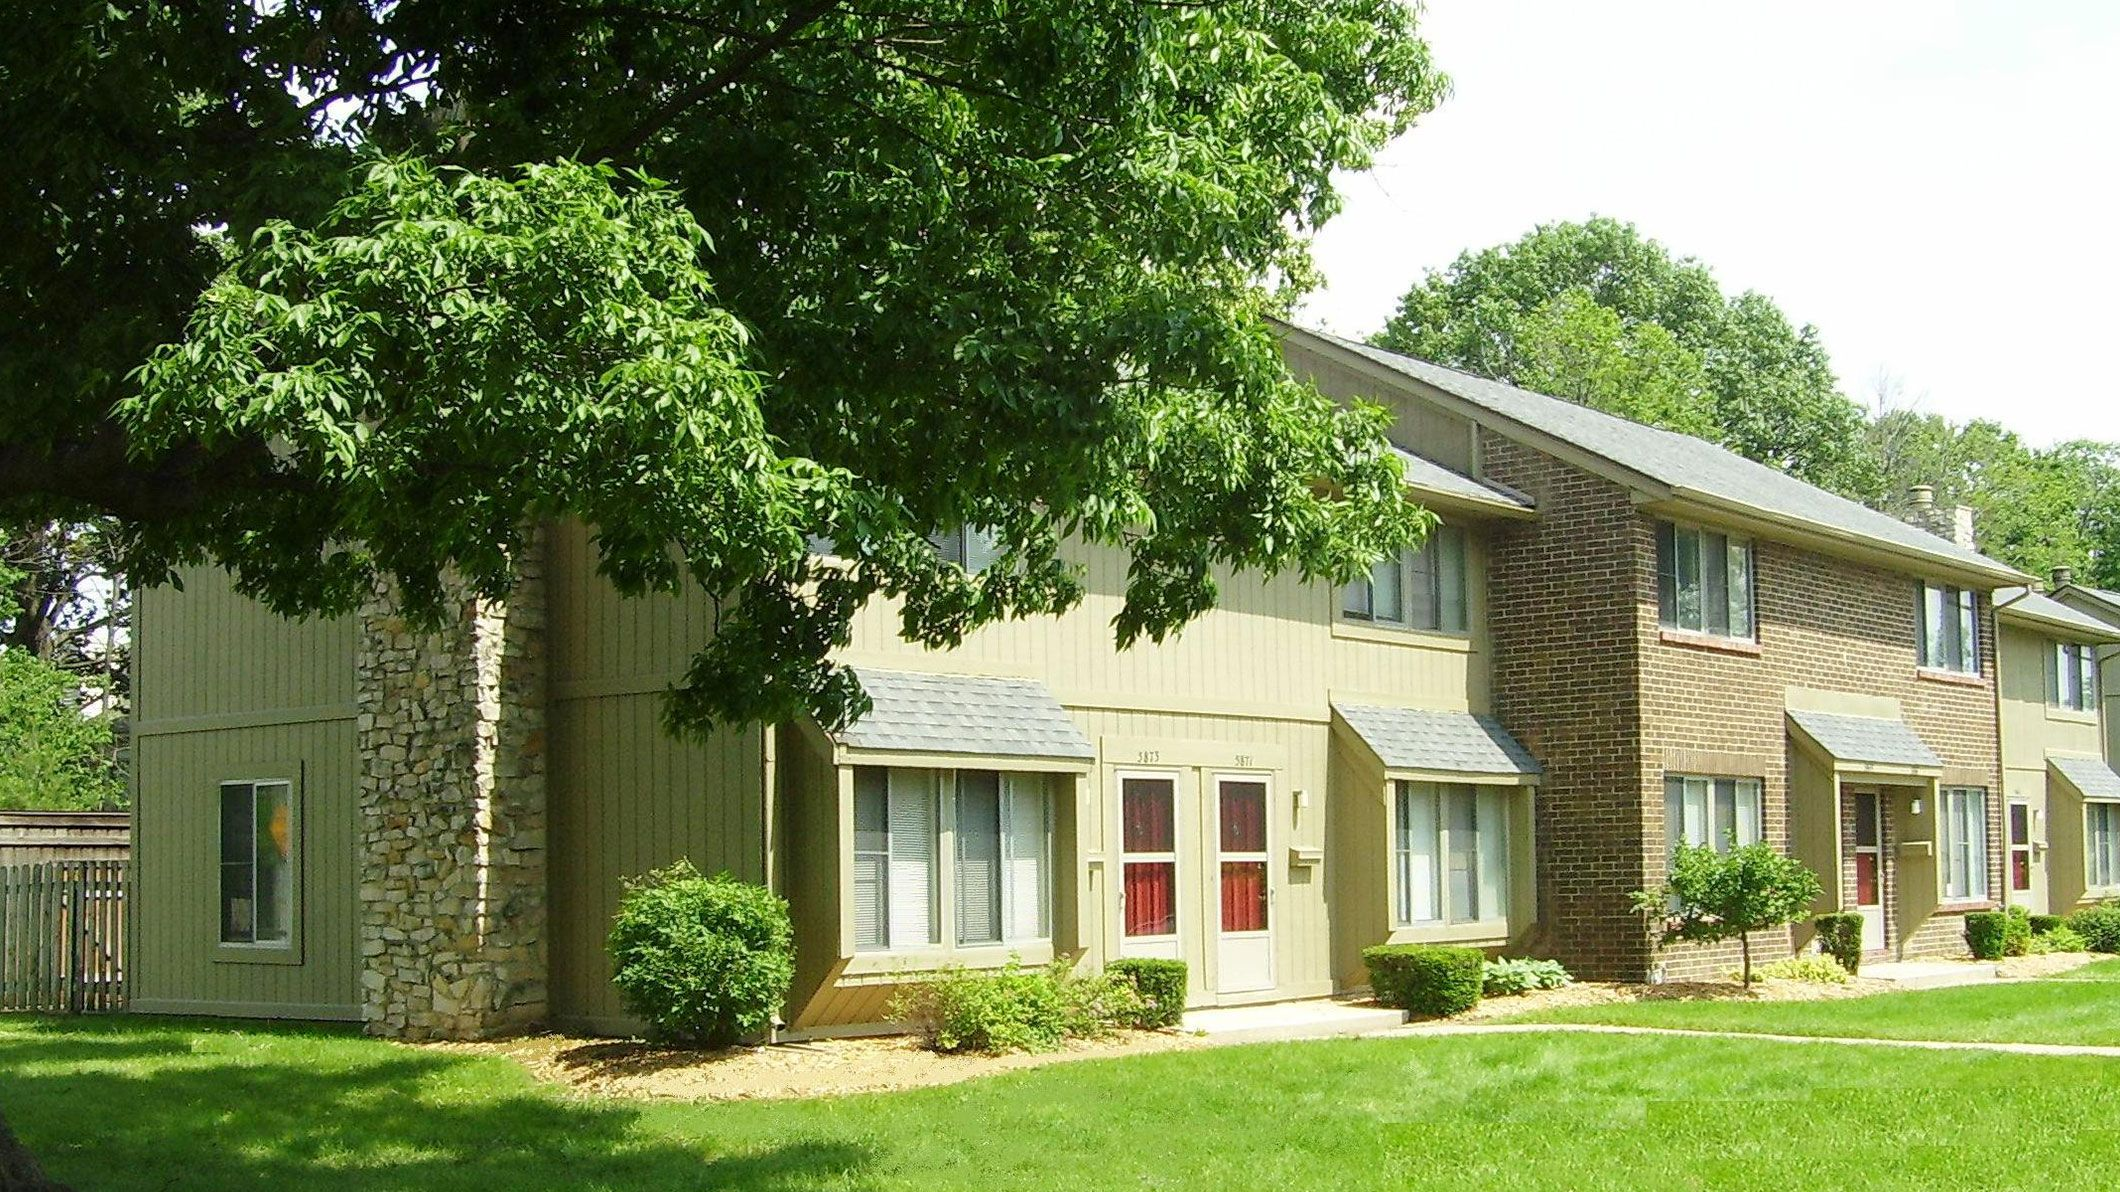 The Woods Of Eagle Creek Apartments For Rent In Indianapolis Indiana Minutes From Eagle Creek Park This Apartments For Rent Shopping Center Butler University